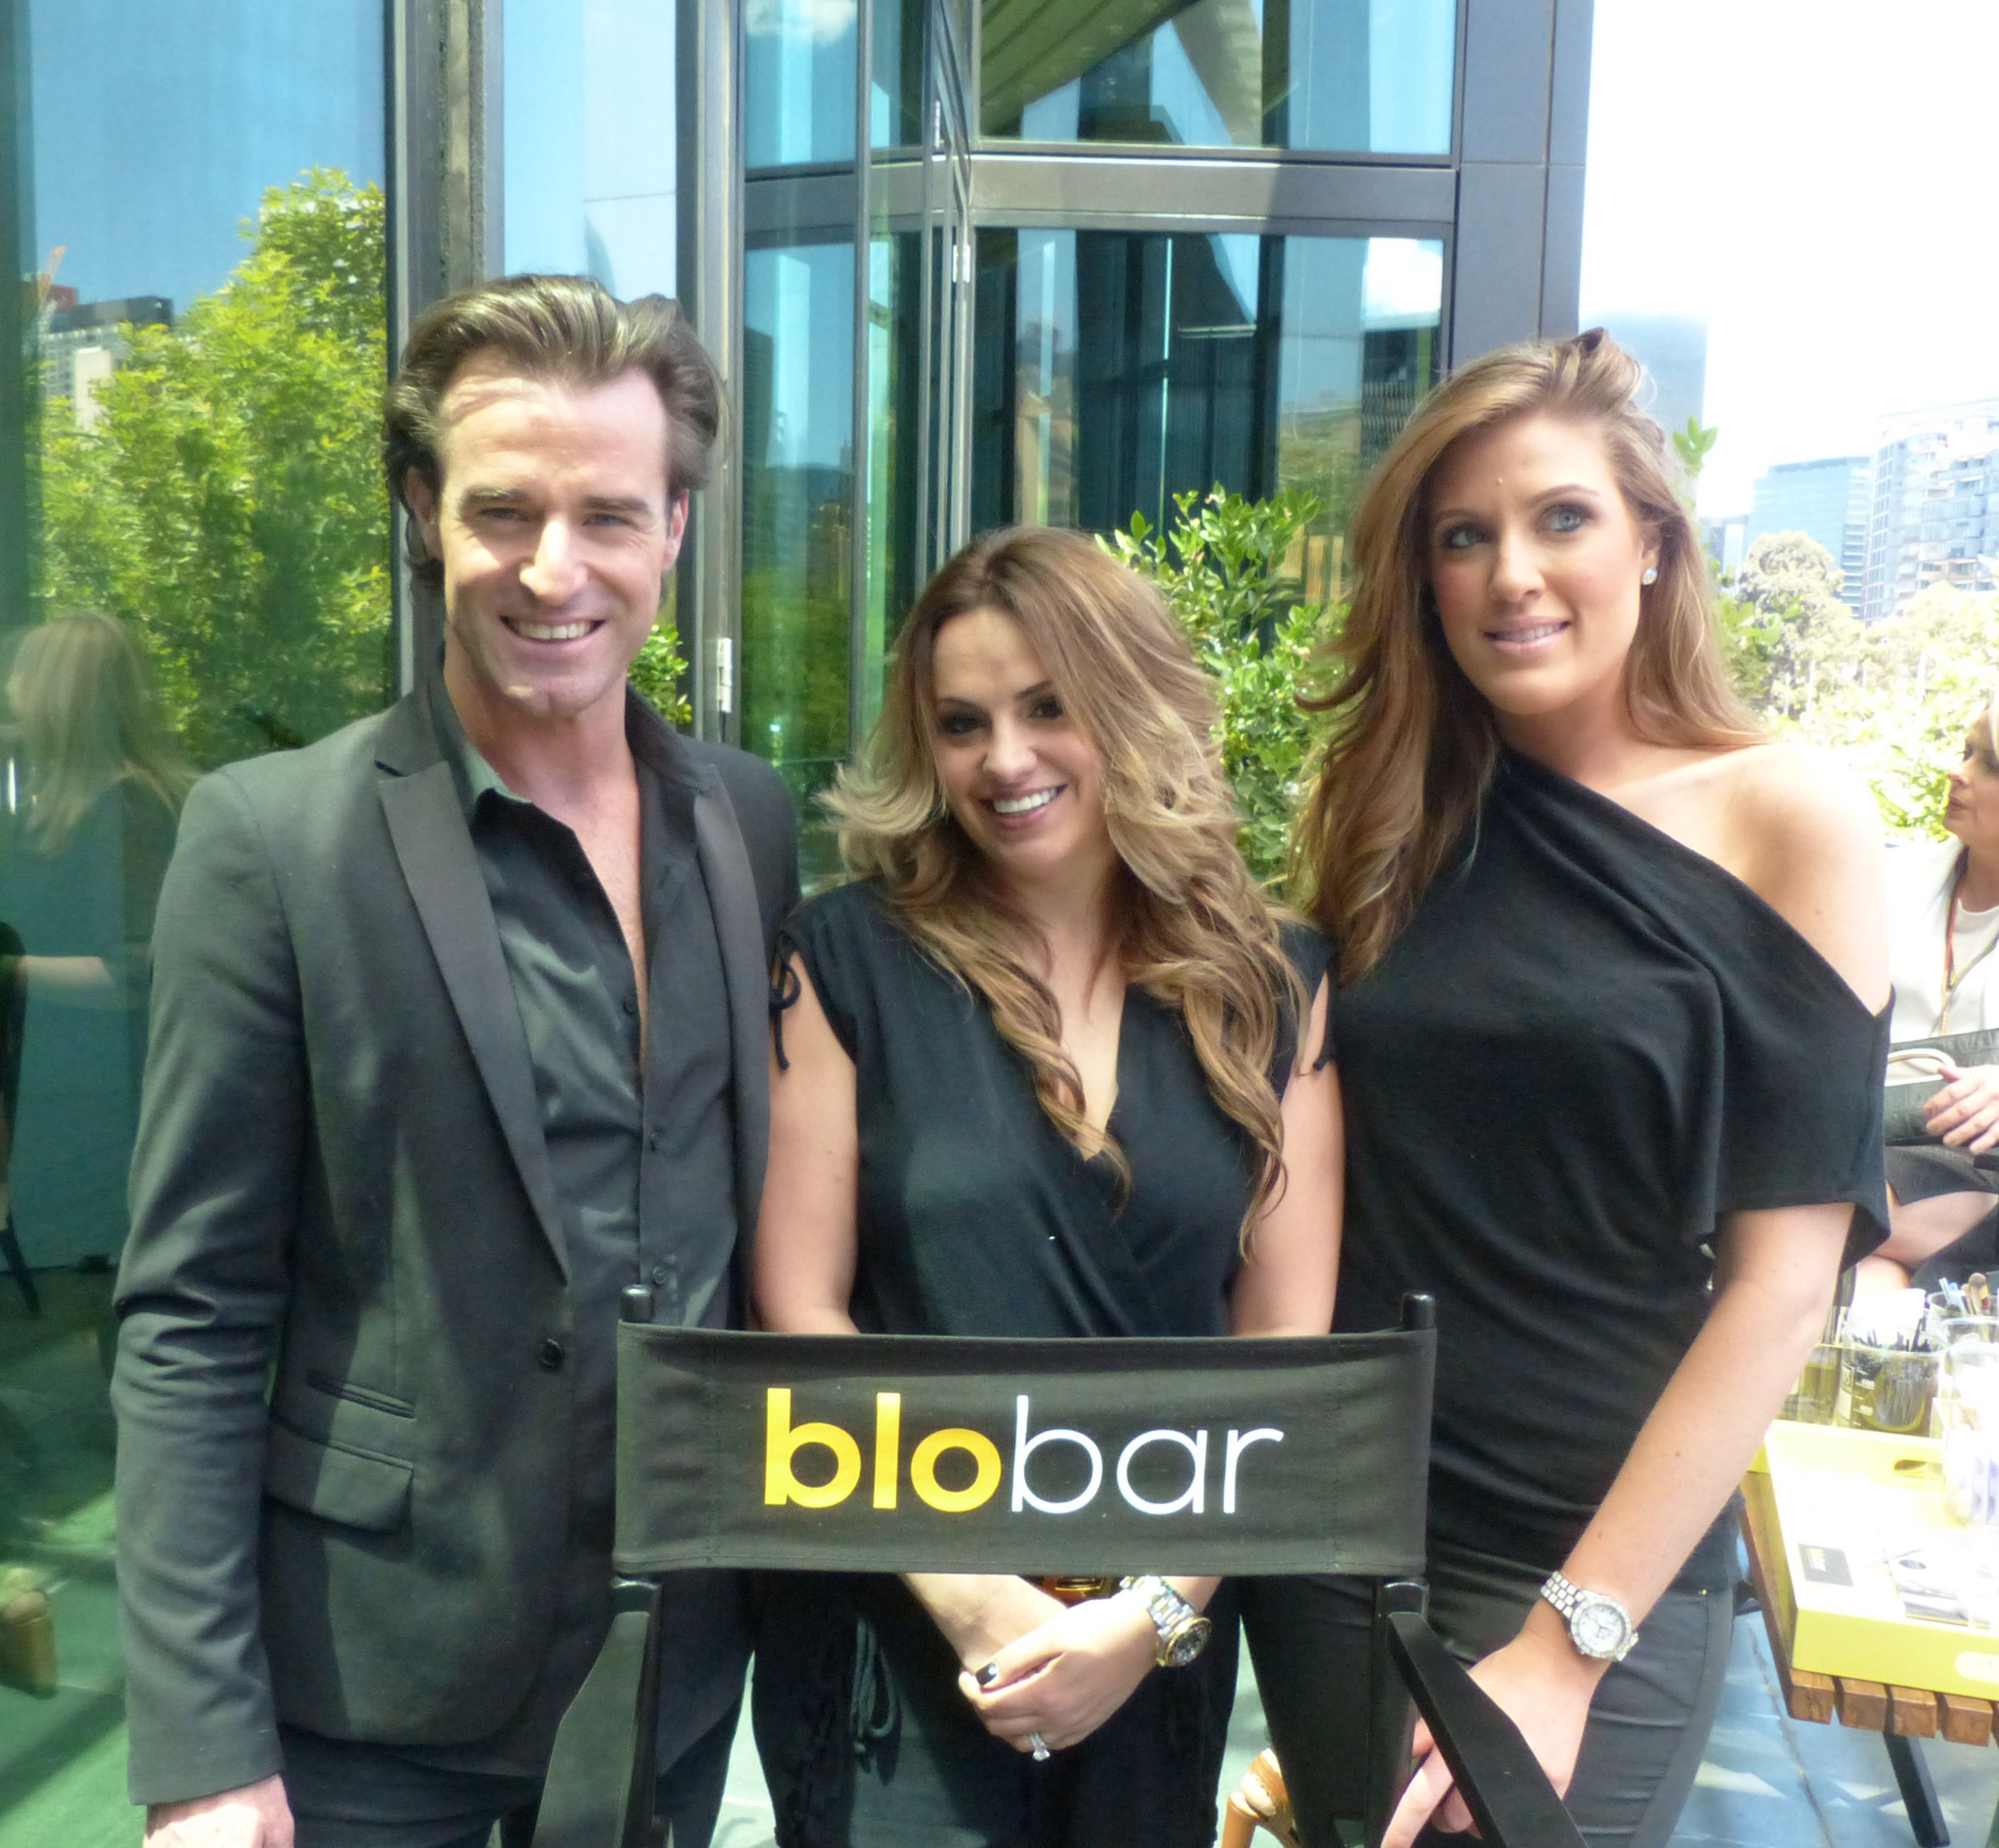 The Dream Team from the Blo Bar were on hand to style lashes and hair for those who'd rushed to make it on time